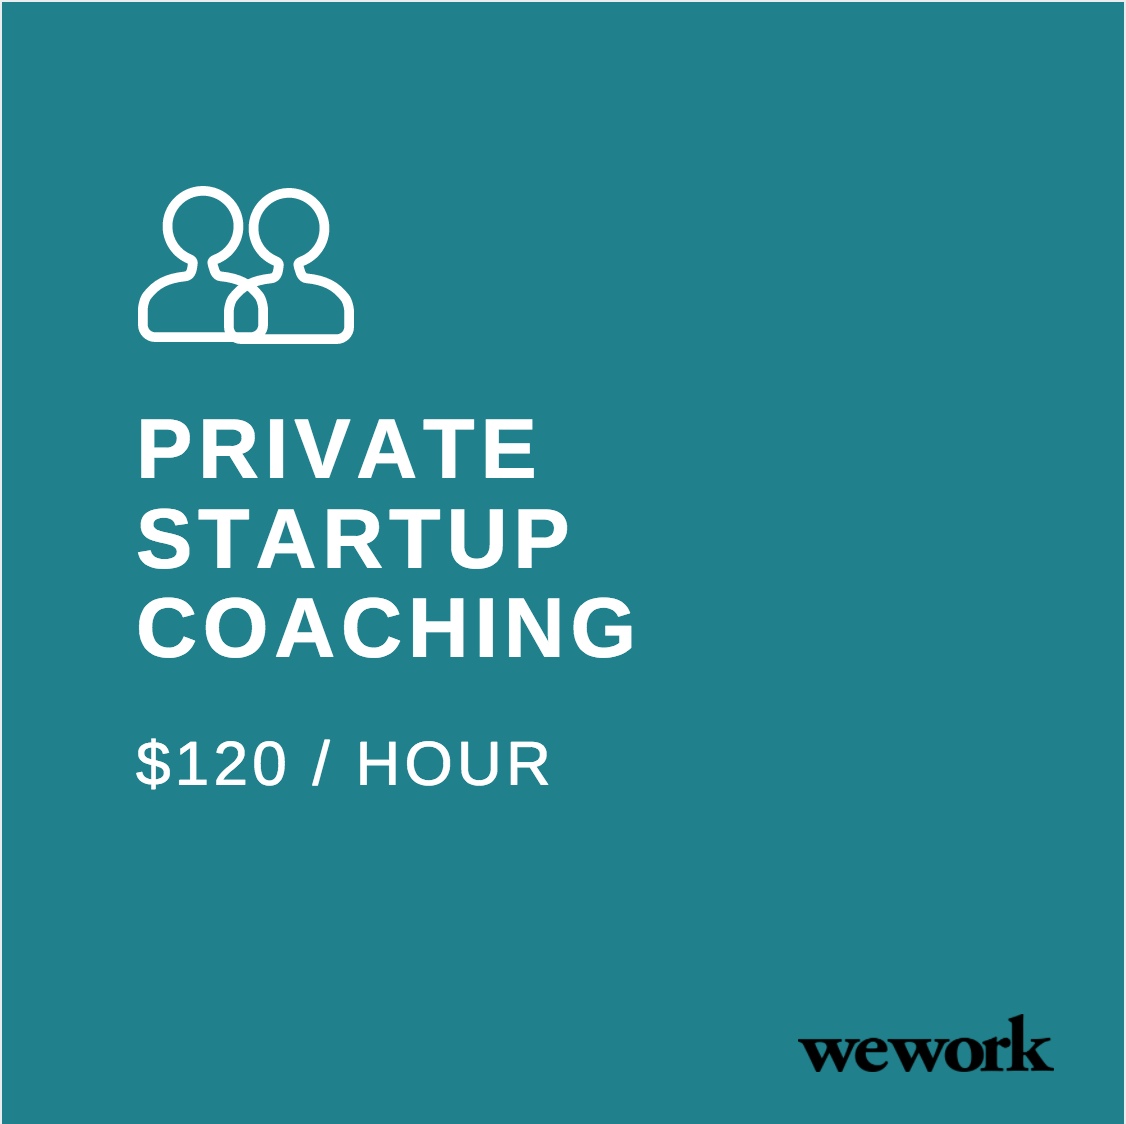 WeWork Startup Coaching Offer